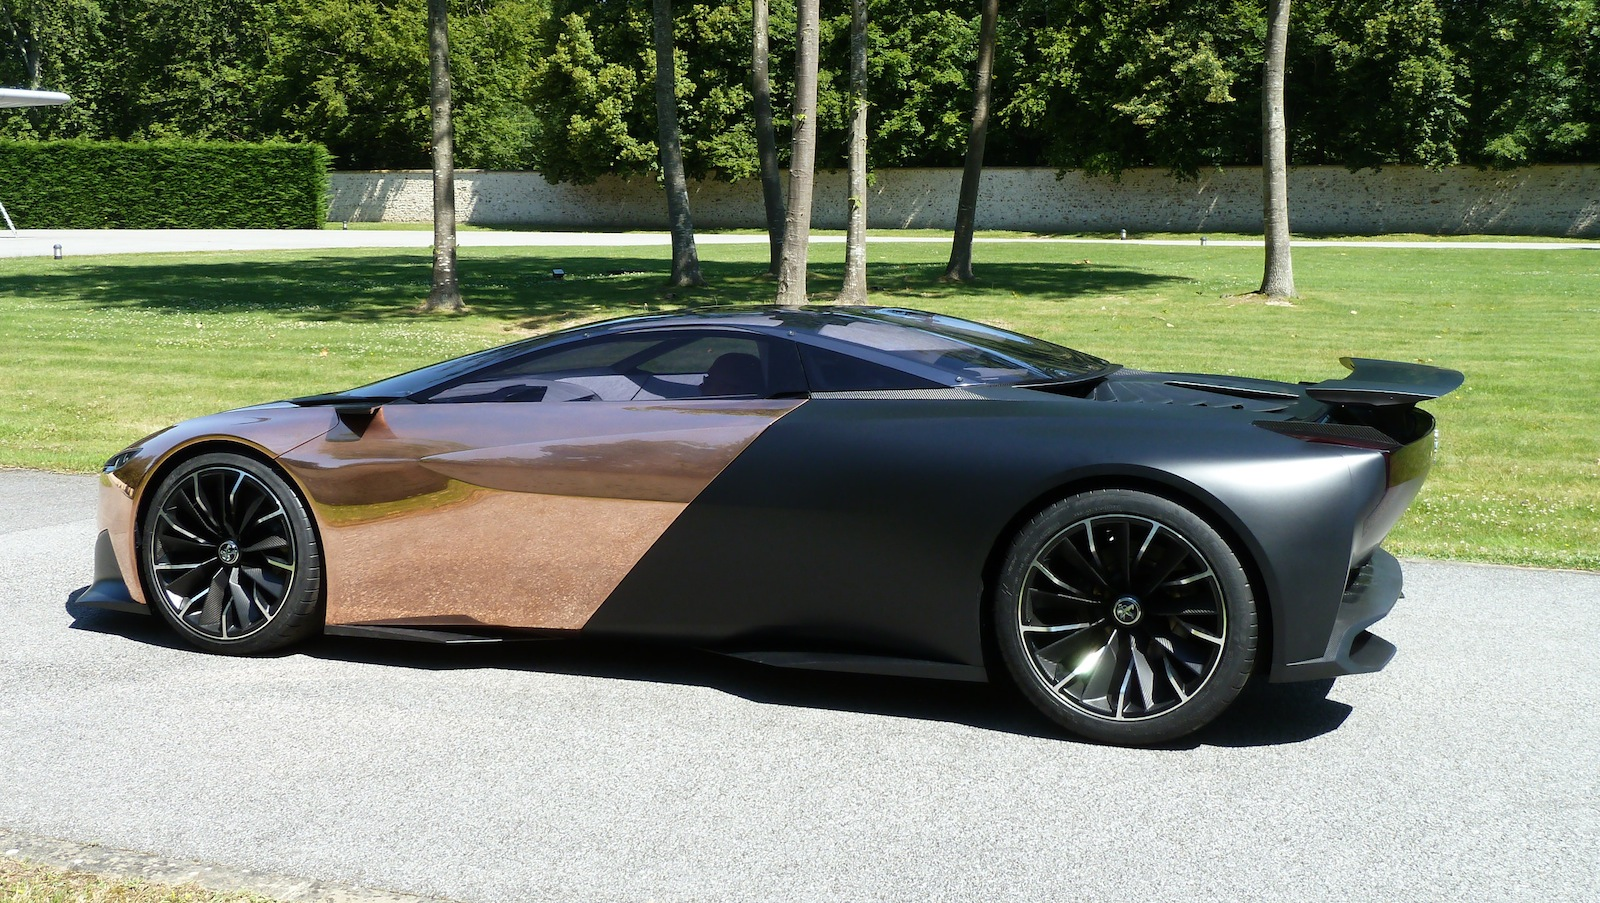 Peugeot Onyx Concept Bound For Goodwood Taking Passengers